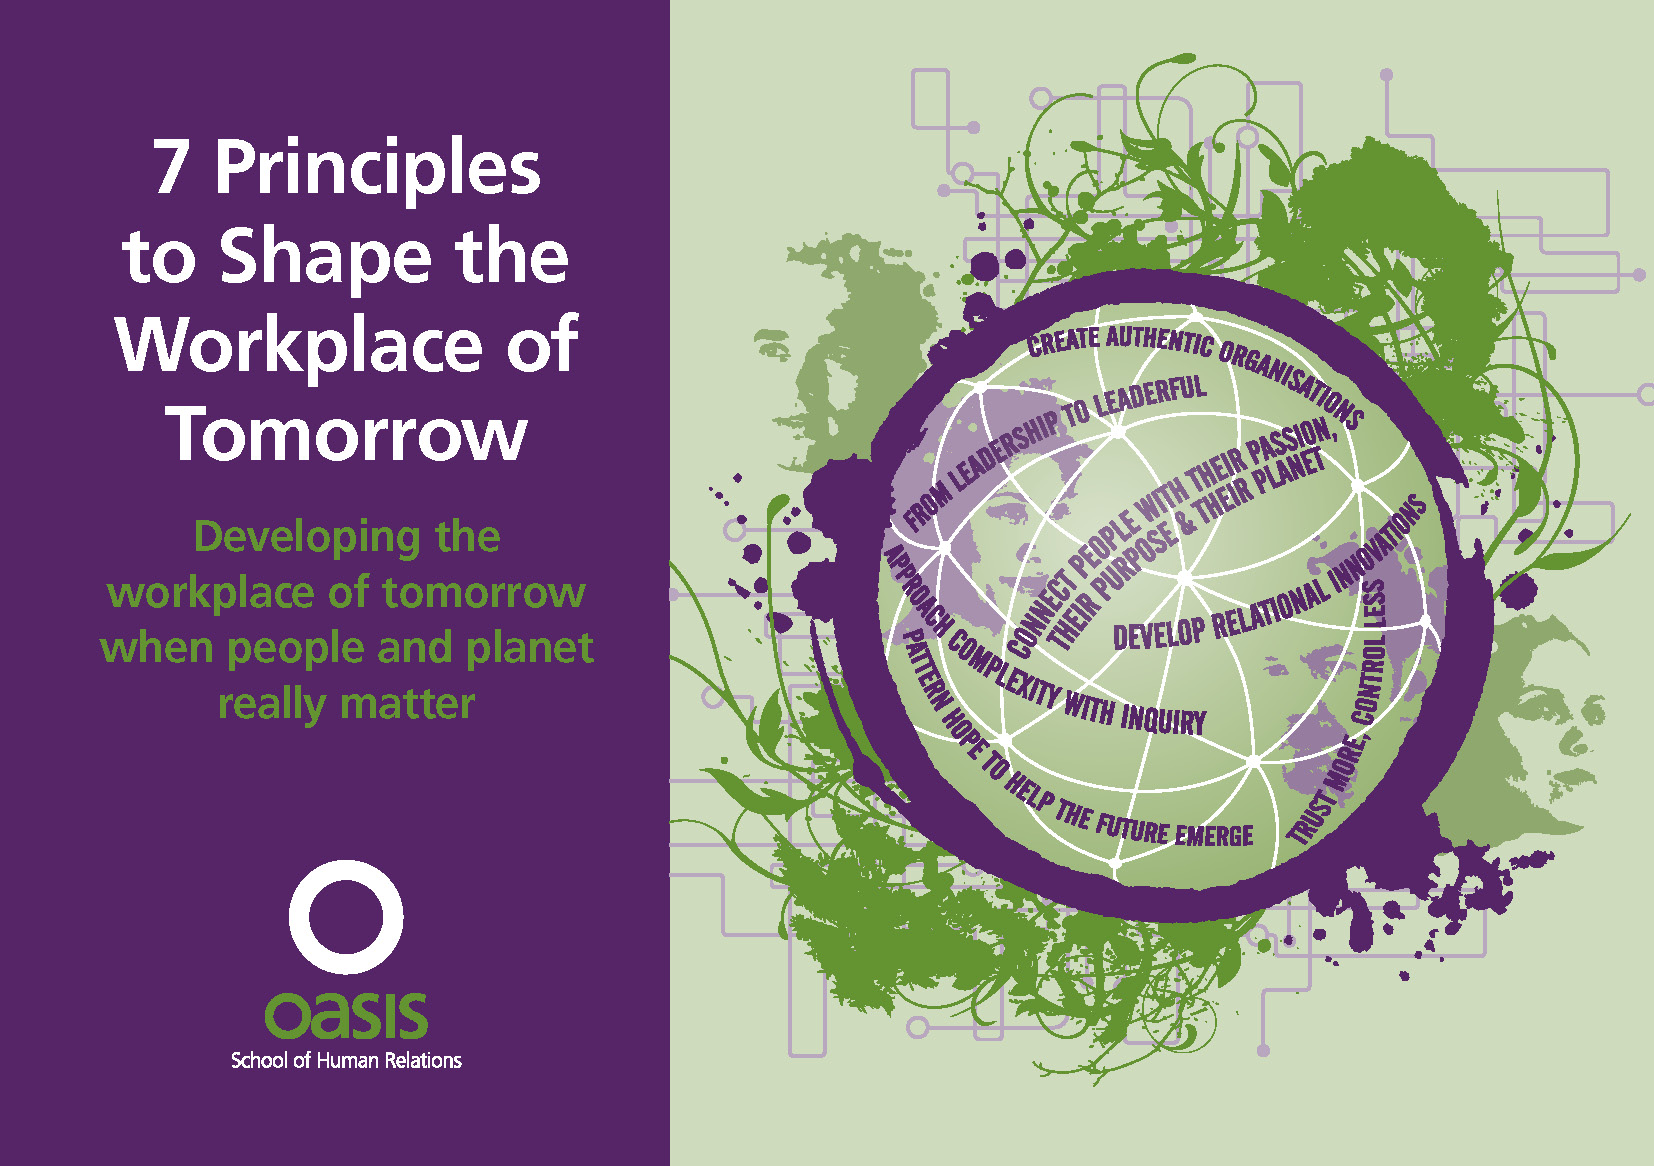 7 Principles to Shape the Workplace of Tomorrow